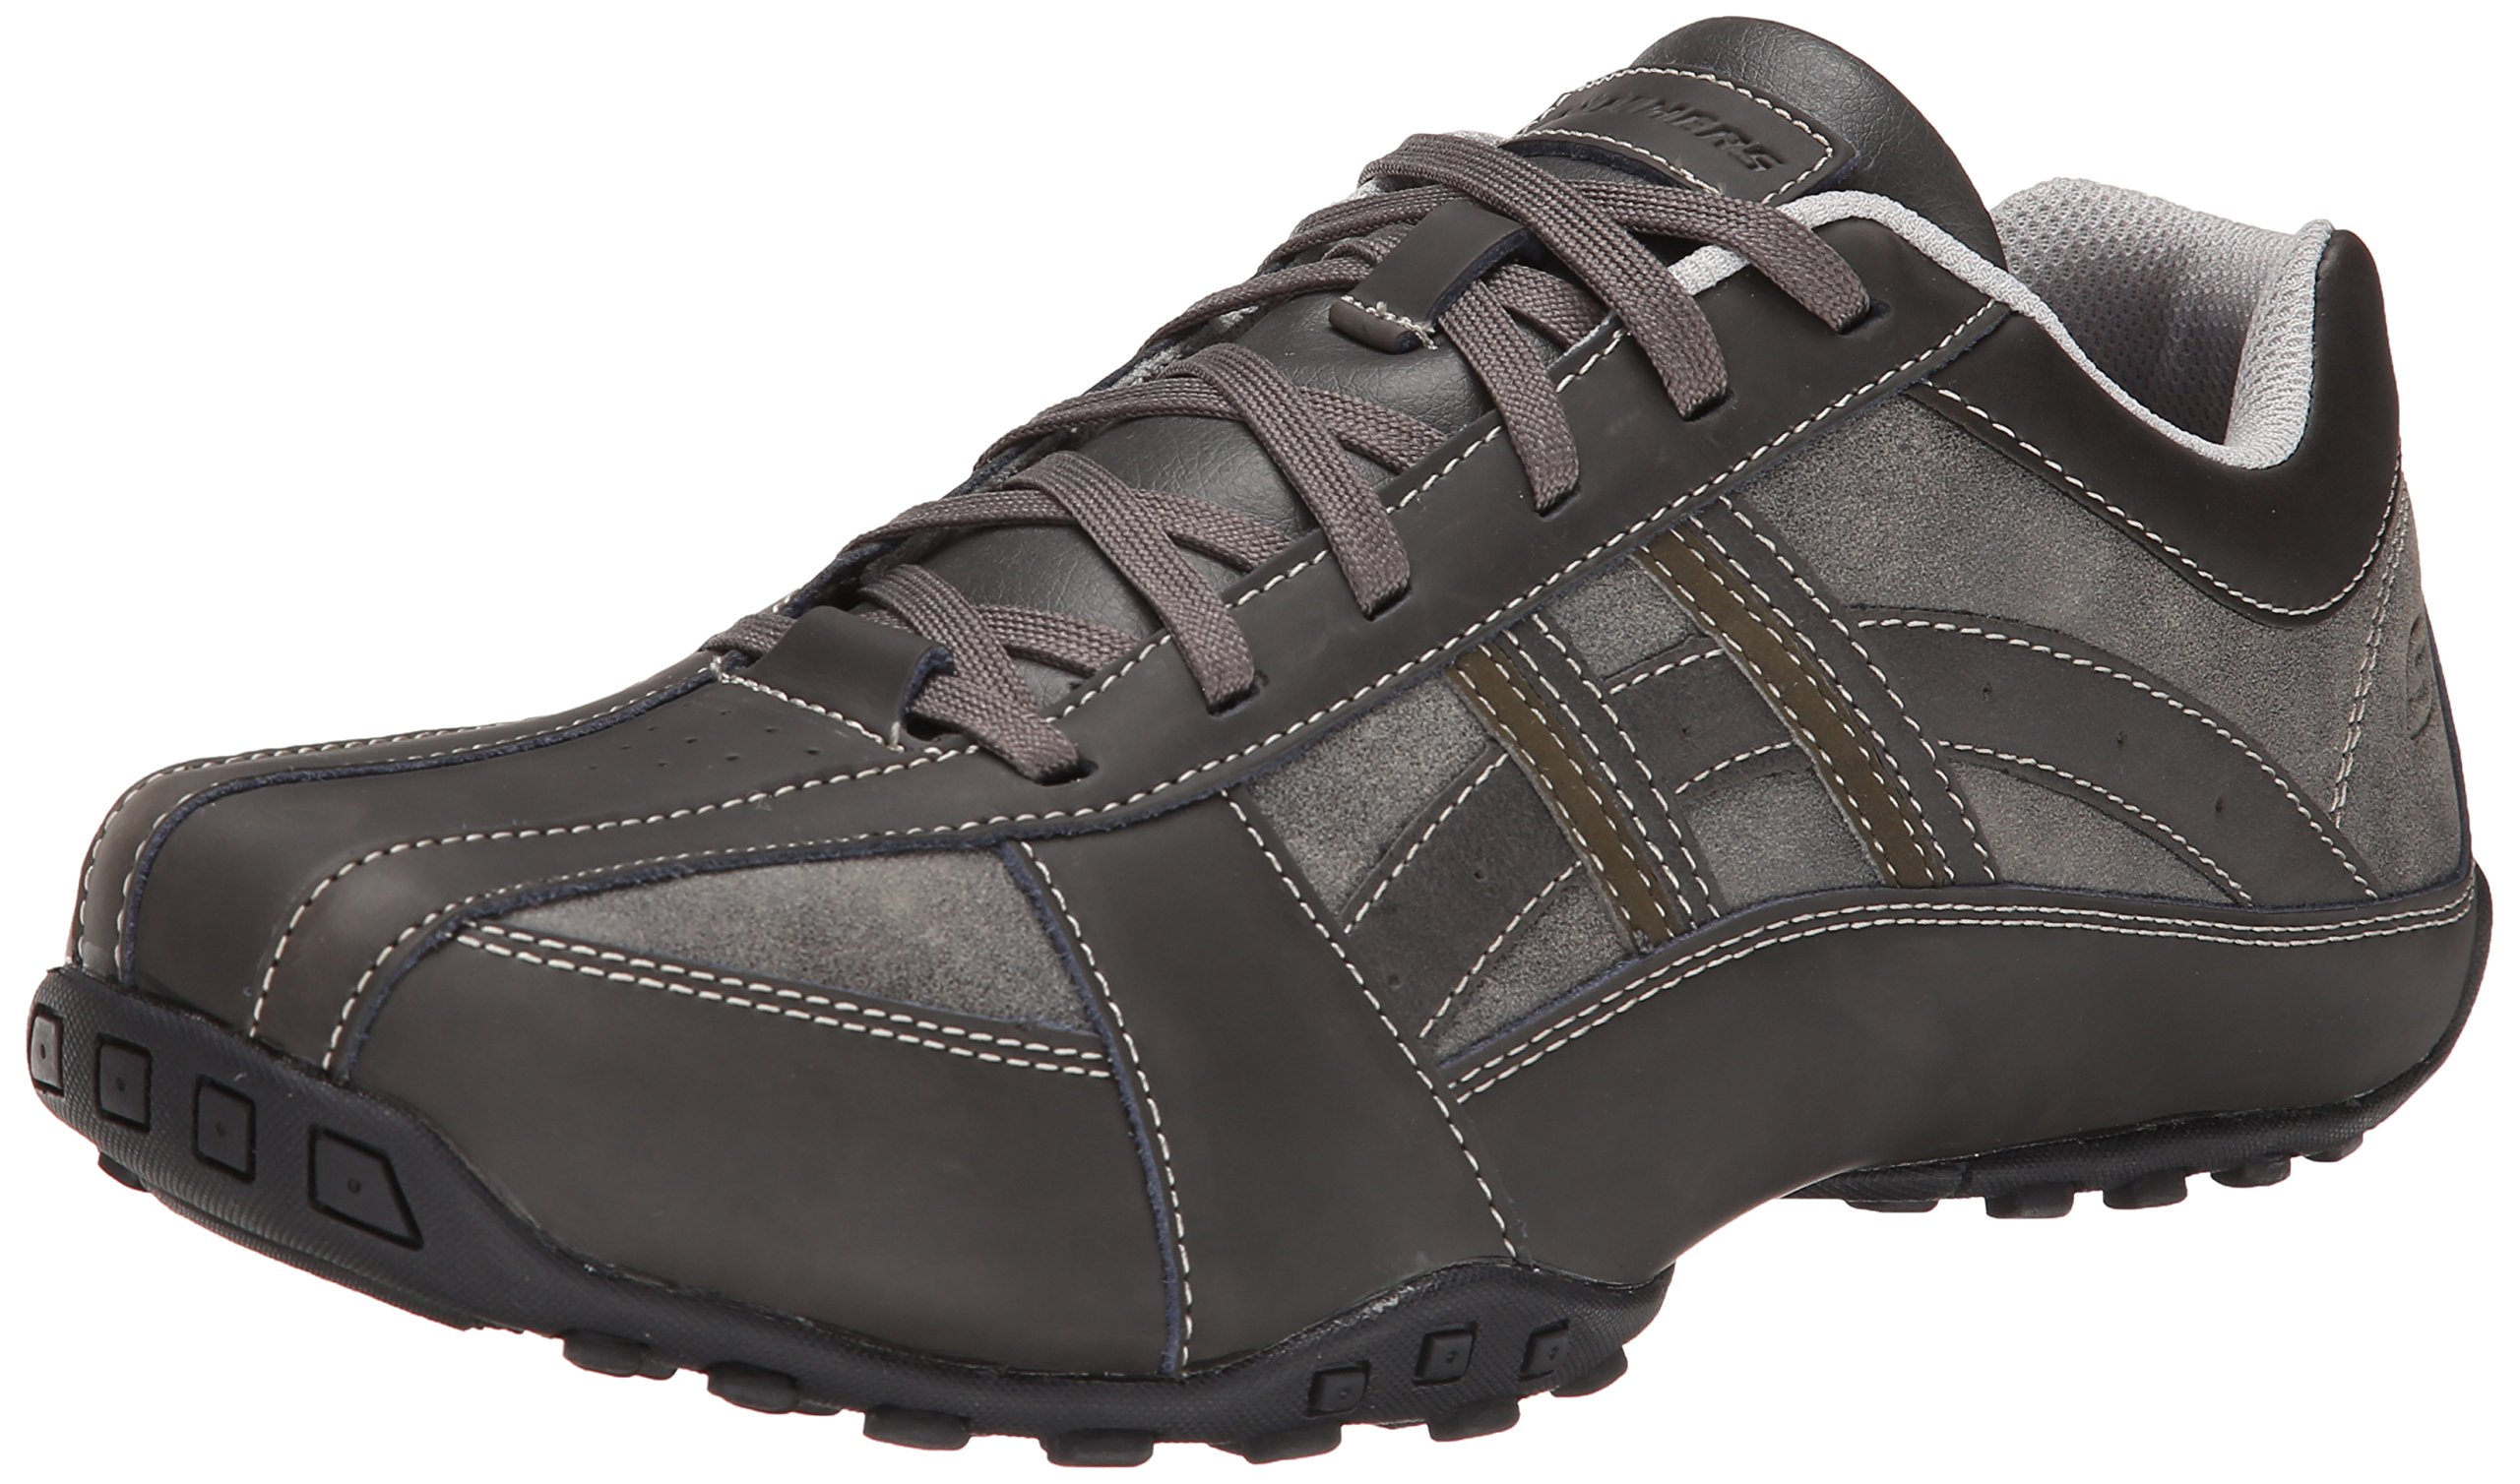 Skechers USA Men's Citywalk Malton Oxford Sneaker,Charcoal,11 M US by Skechers